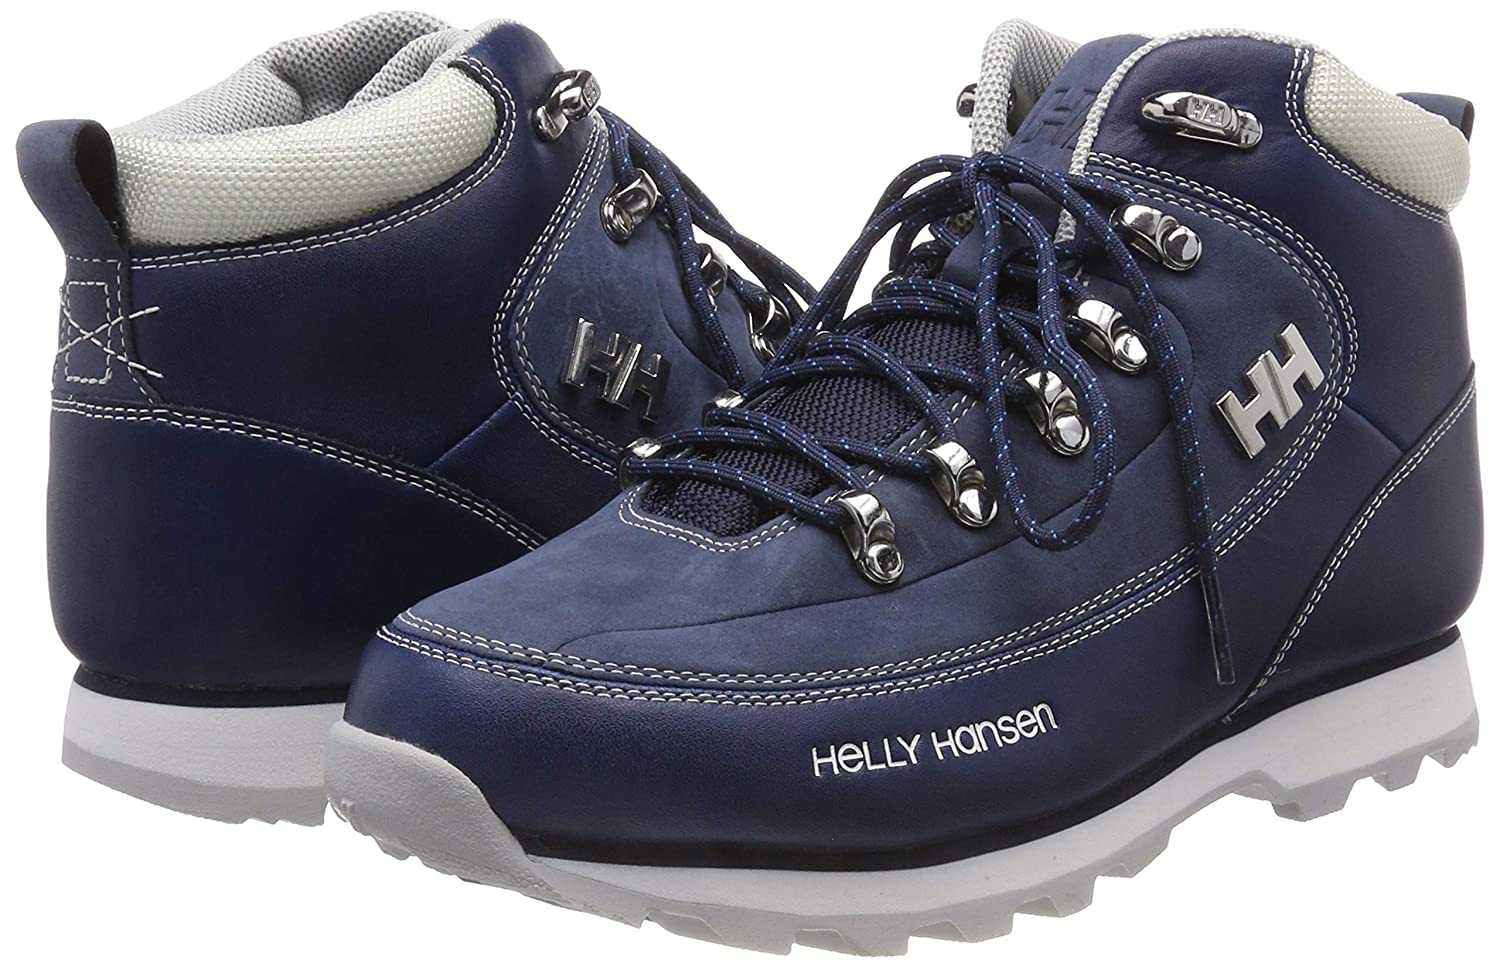 Helly Hansen 10516 W THE FORESTER, FORESTER, FORESTER, Damen Stiefel 732c60